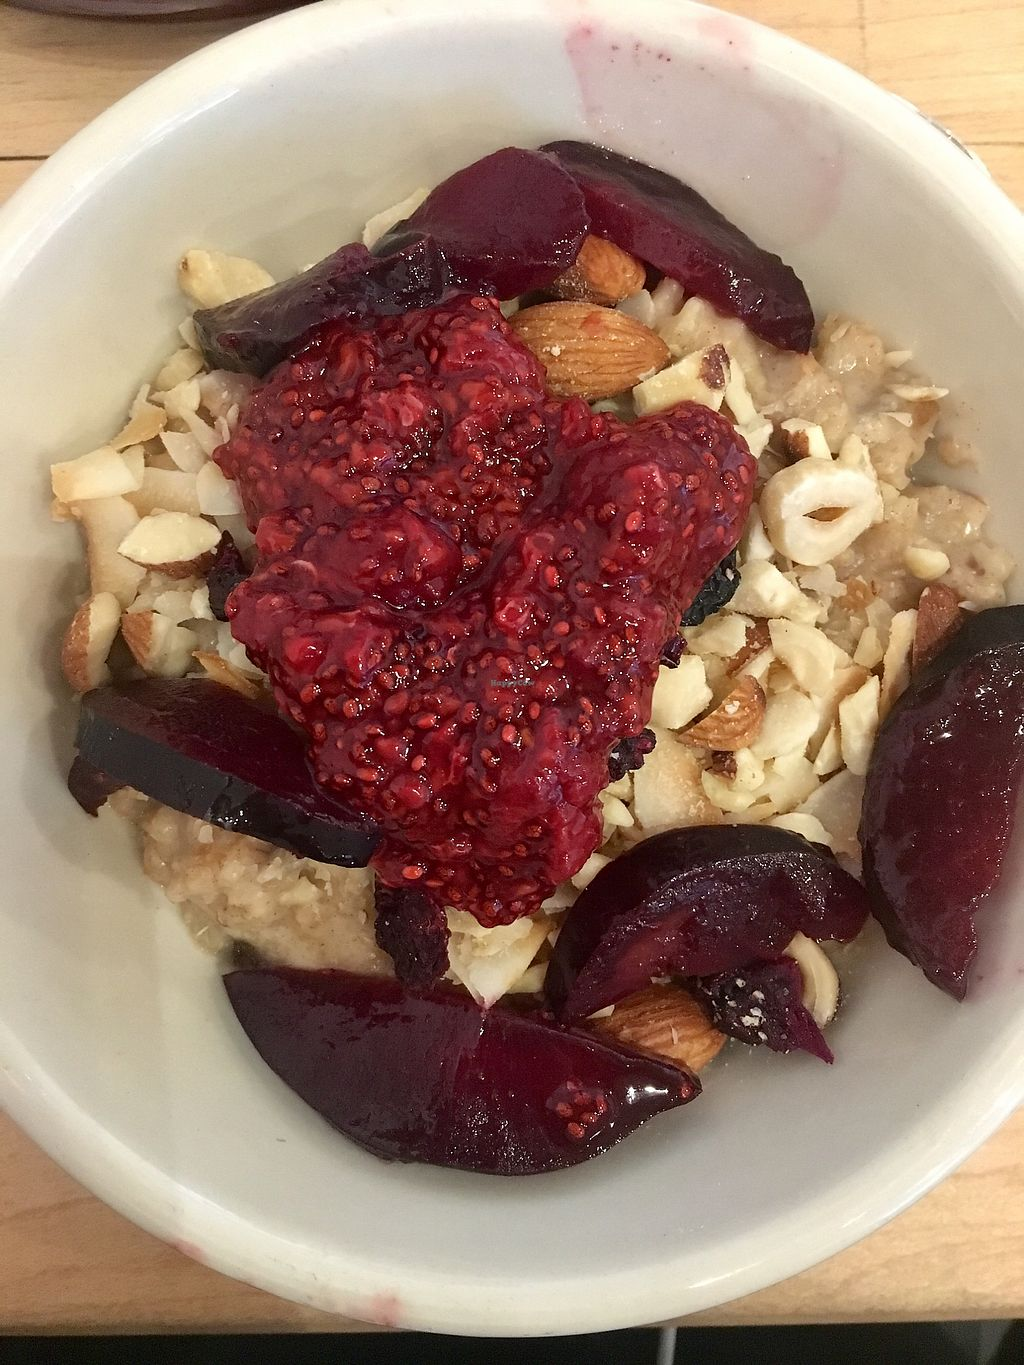 """Photo of Nourish Cafe - Nob Hill  by <a href=""""/members/profile/Ostara"""">Ostara</a> <br/>Sweet Morning Bowl (warm oatmeal w. different types of berries, nuts and coconut)  <br/> July 6, 2017  - <a href='/contact/abuse/image/91641/277182'>Report</a>"""